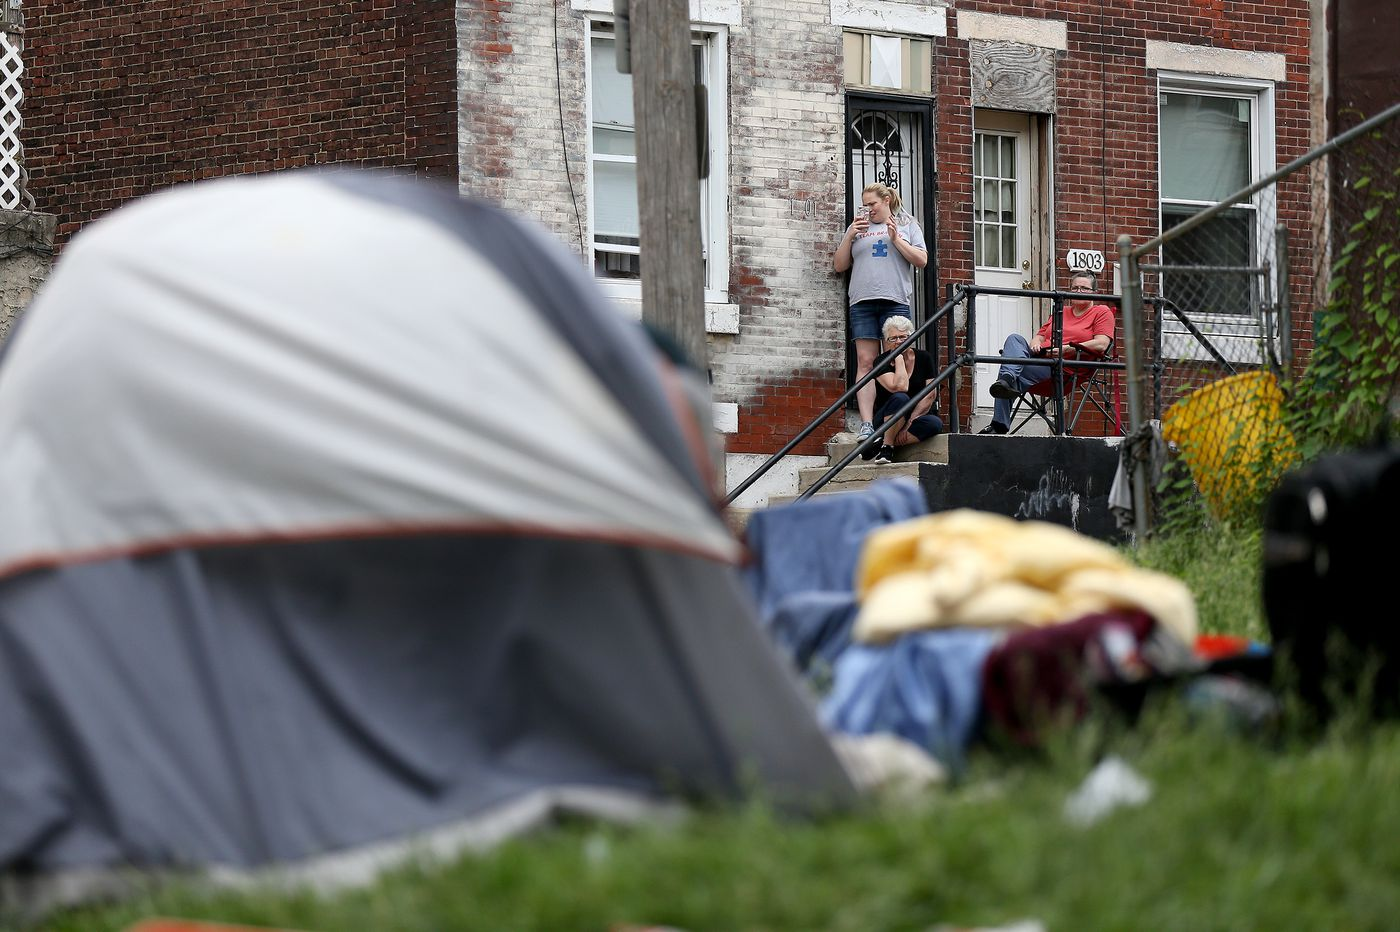 Philly deserves credit for clearing out heroin encampments, offering help | Editorial